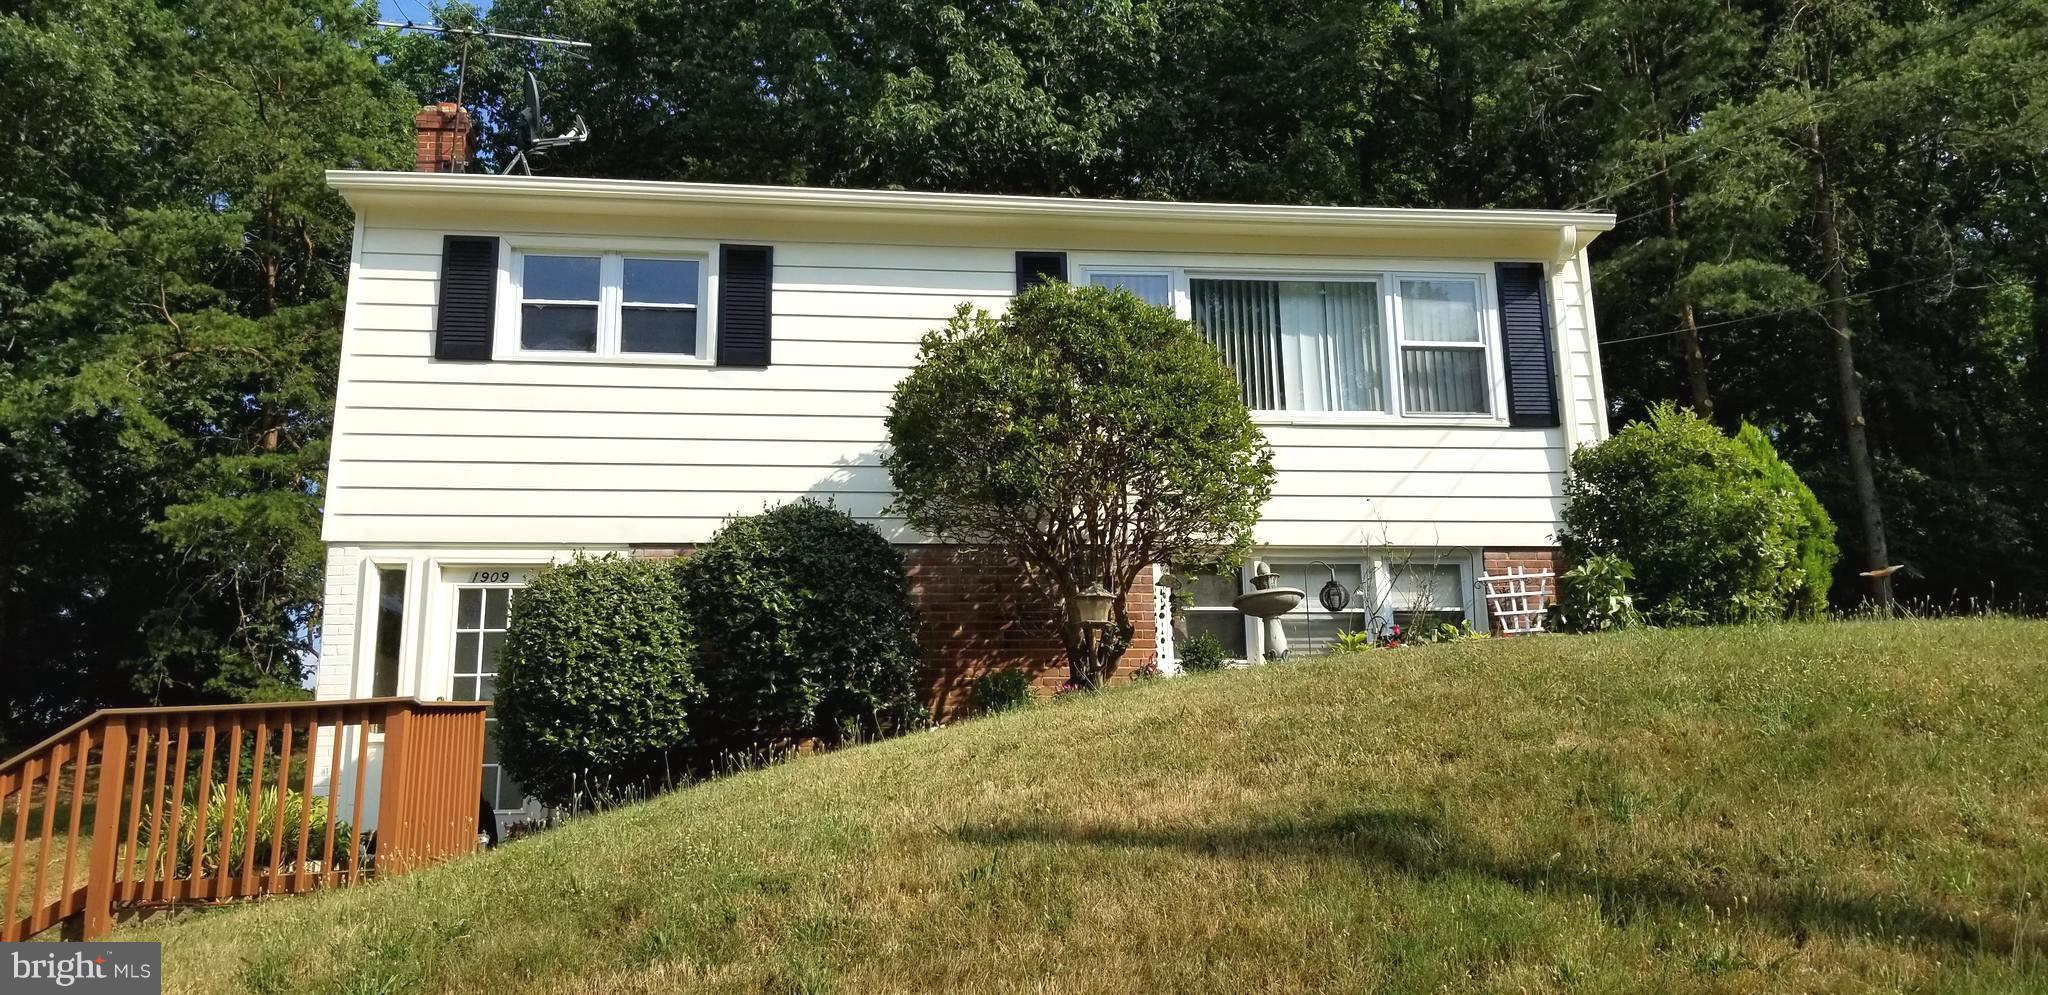 Charming 3 bedroom,1.5 bath home on over 1/3 acre lot. Minutes to Prince William Parkway, Interstate 95 and the Horner Road commuter lot. Spacious backyard with plenty of space for a family/friends cookout. 2017-New Water heater,furnace & electrical panel. 2018-New Washer/Dryer, kitchen cabinets/counter, carpet,microwave,dishwasher,garbage disposal, windows,lights,freshly painted and more. No HOA.